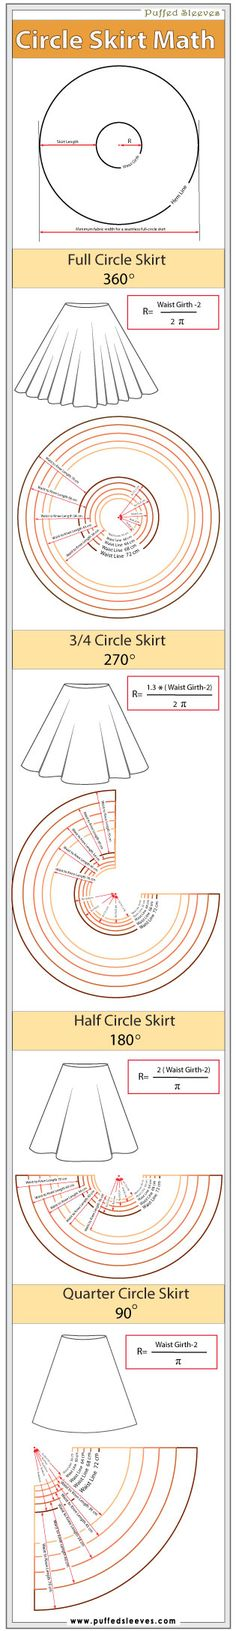 Crcle skirt construction infographic